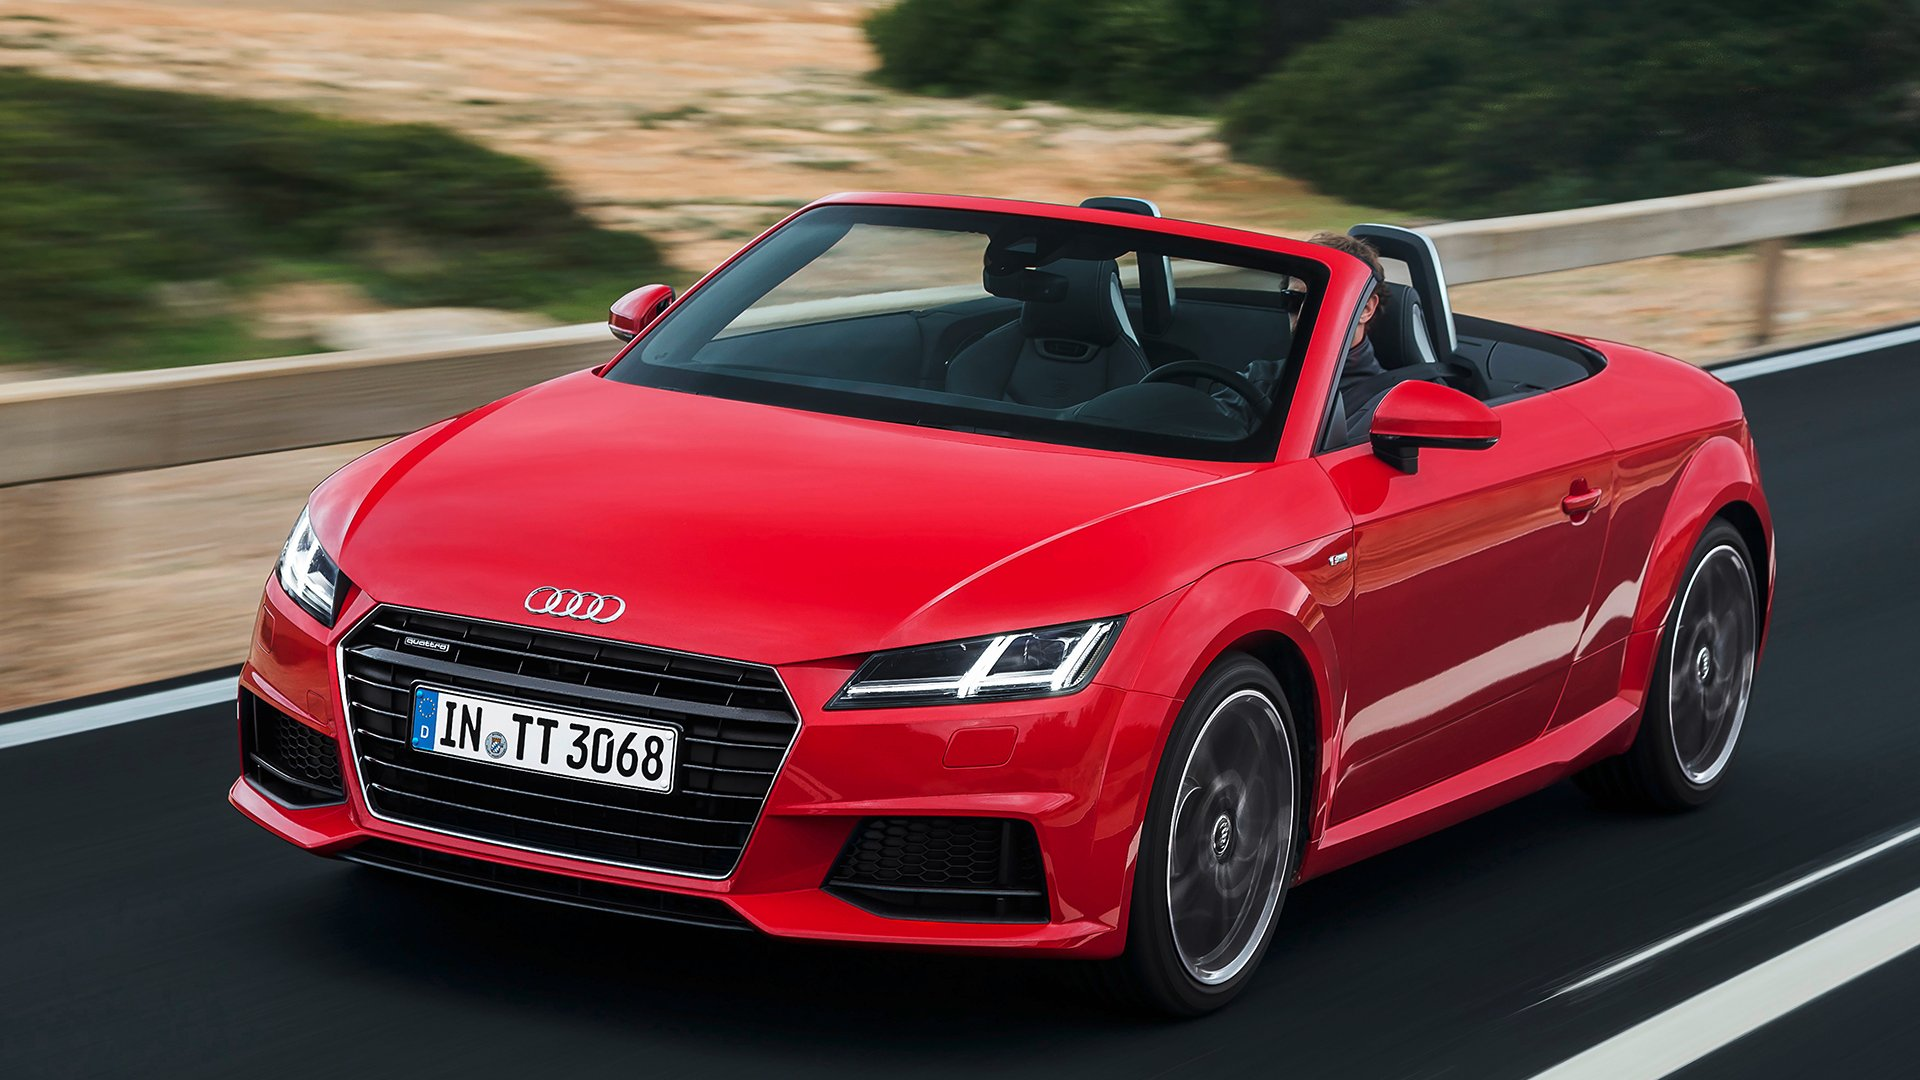 2016 audi tt us pricing revealed costs more than the a5 autoevolution. Black Bedroom Furniture Sets. Home Design Ideas